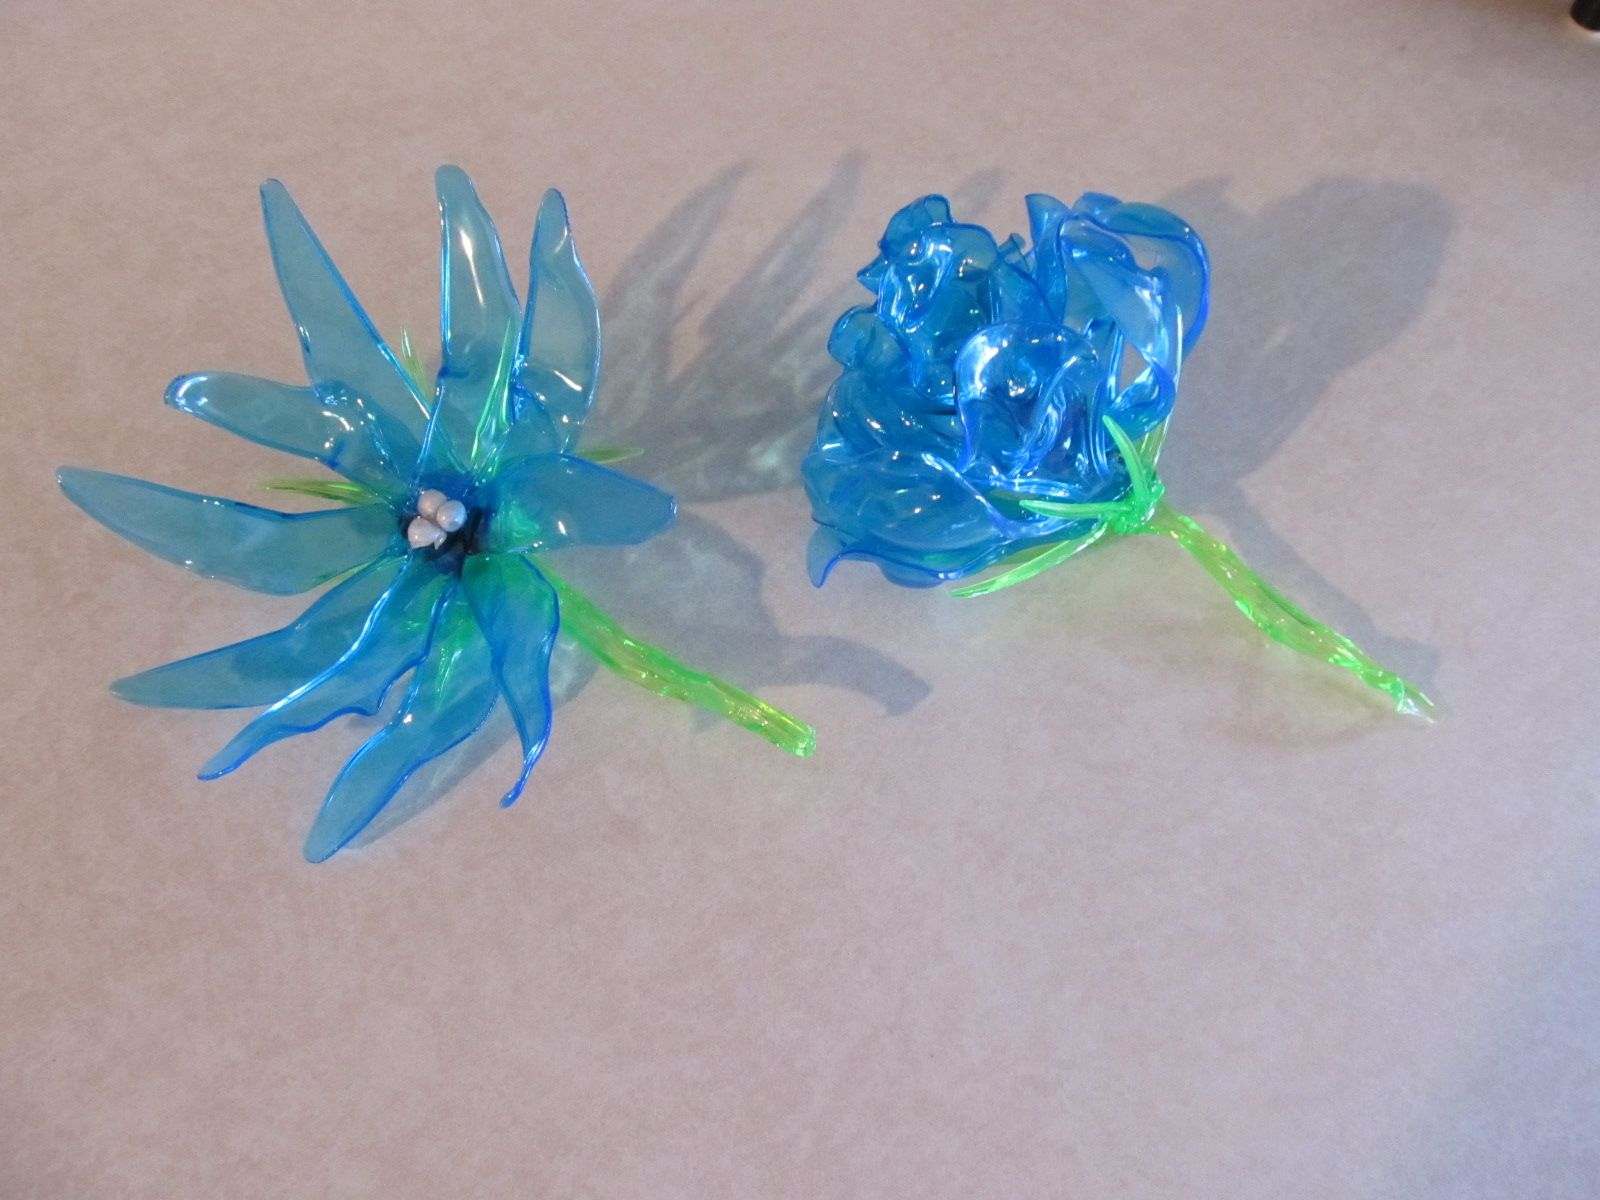 Two Flowers I Made From Plastic Spoons And Knives (petals) And Forks (stems